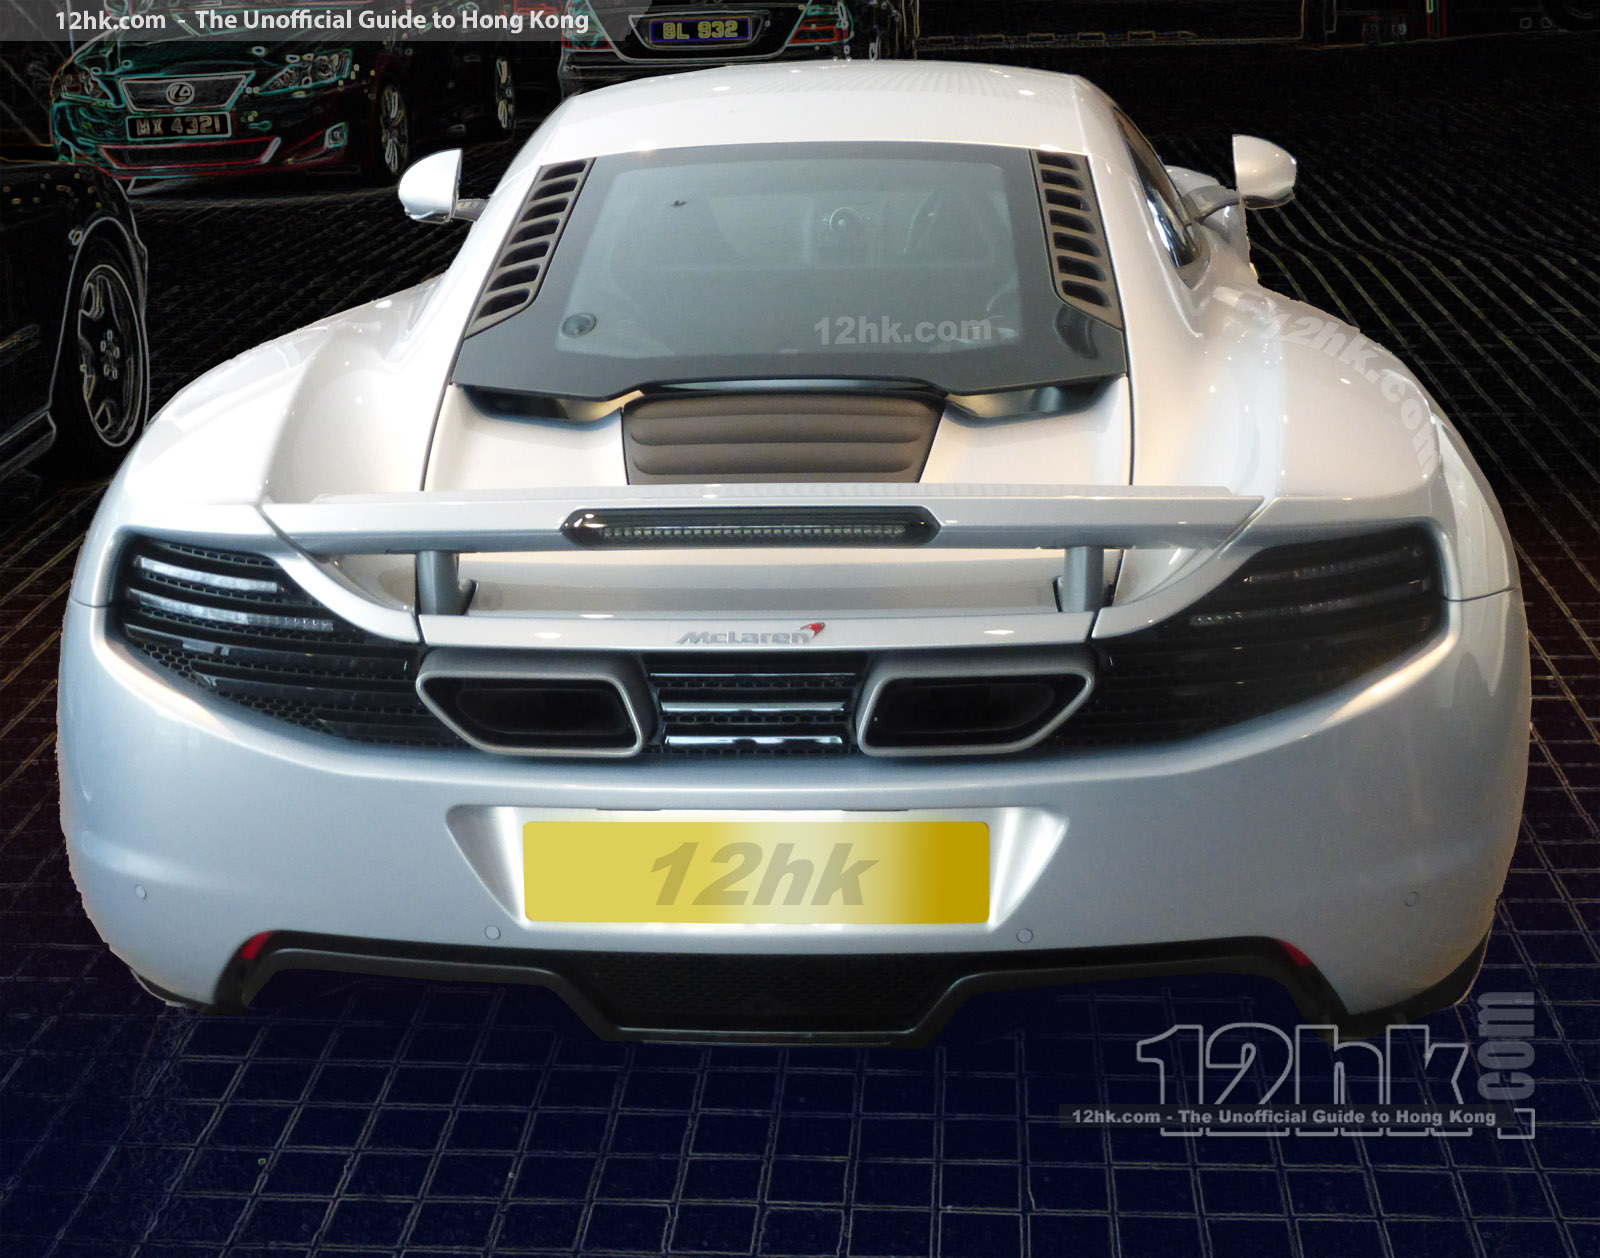 silver McLaren ready to rumble